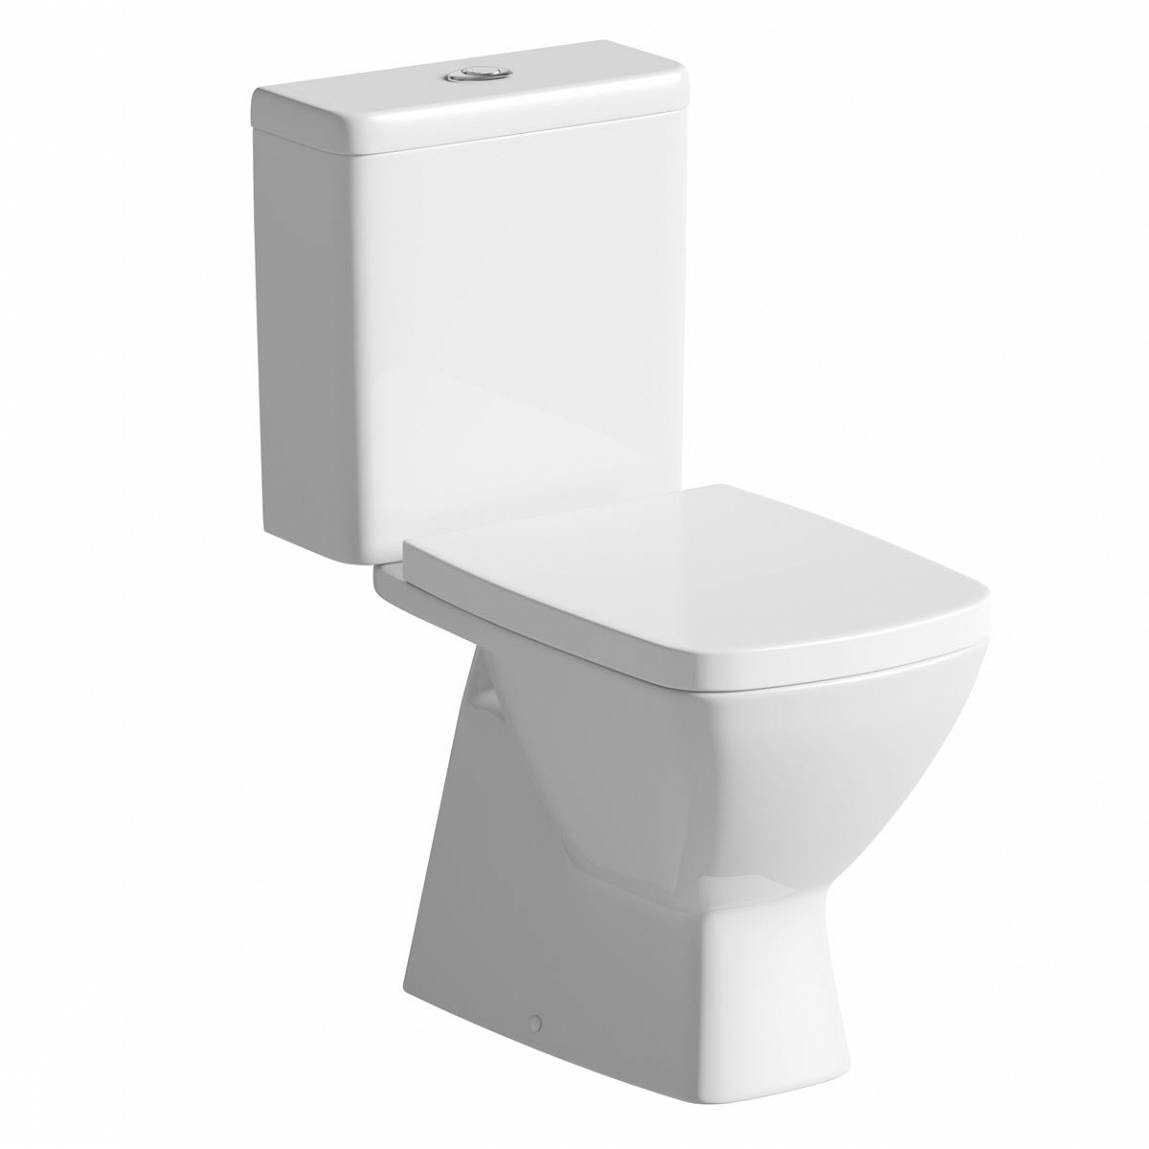 Mode Cooper close coupled toilet with soft close seat with pan connector